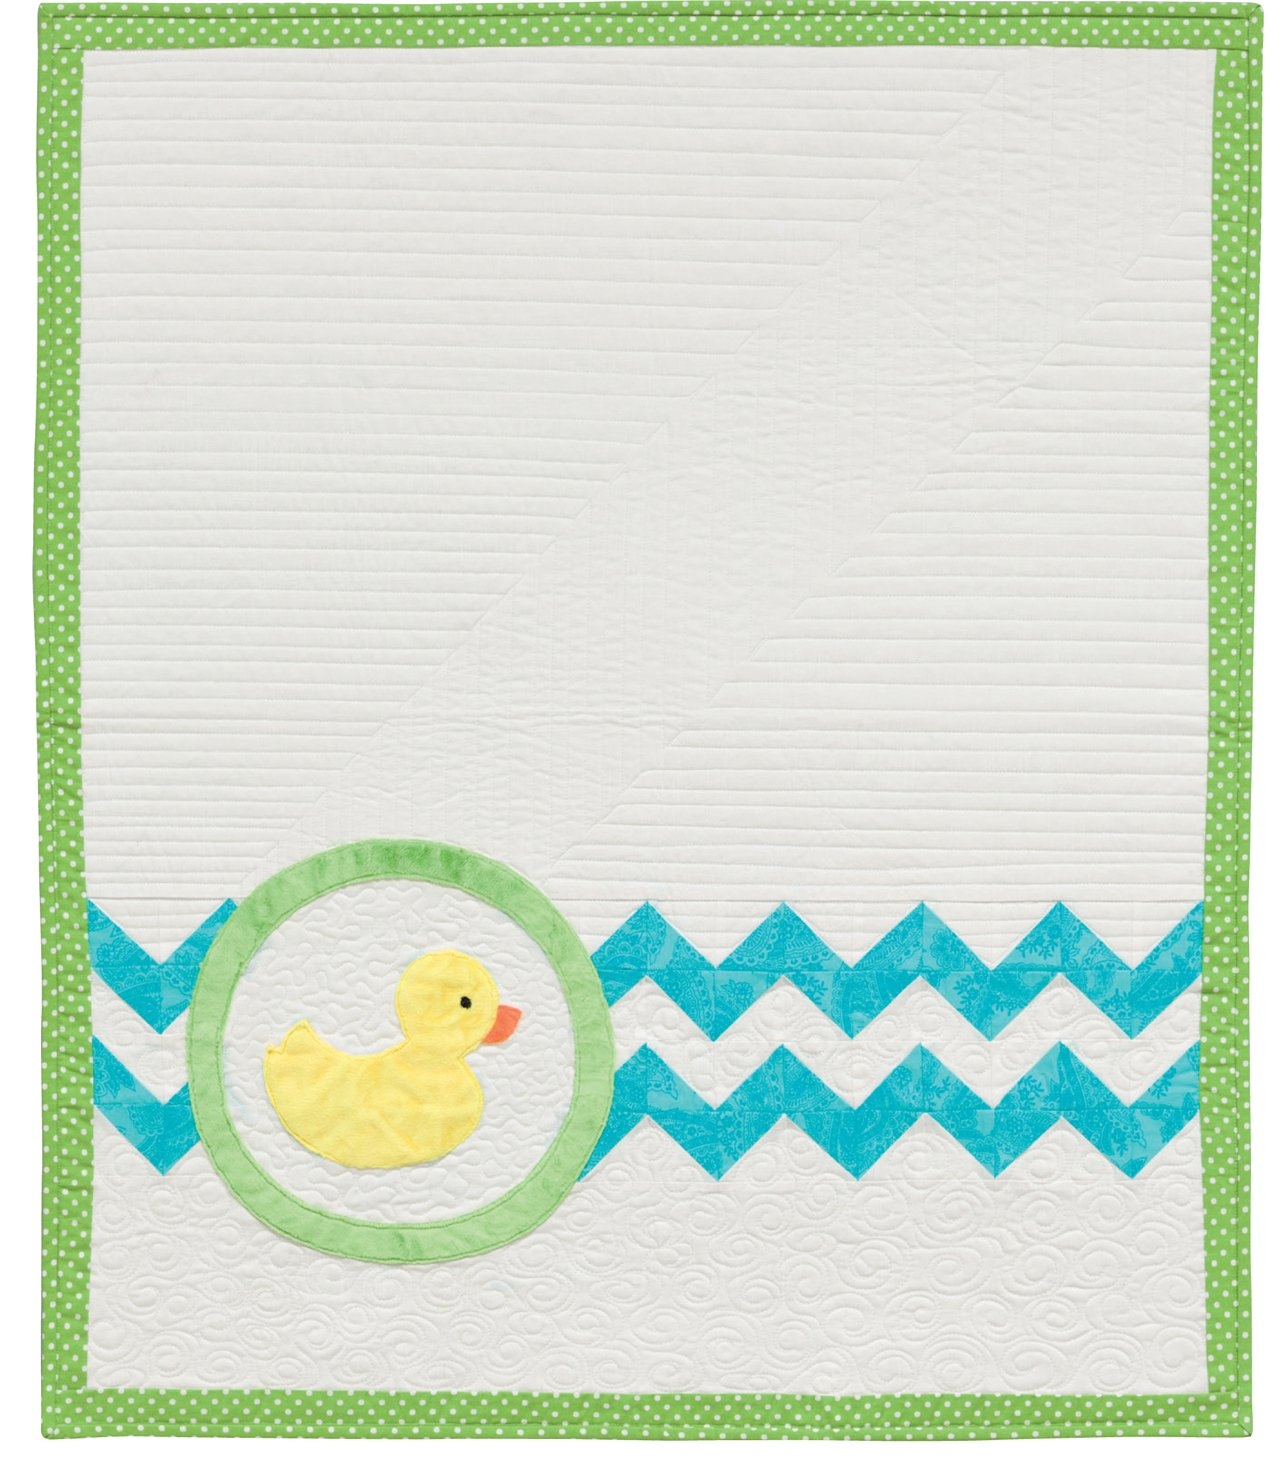 Nap and nod 12 adorable baby quilts myra harder 9781604683776 nap and nod 12 adorable baby quilts myra harder 9781604683776 amazon books fandeluxe Images